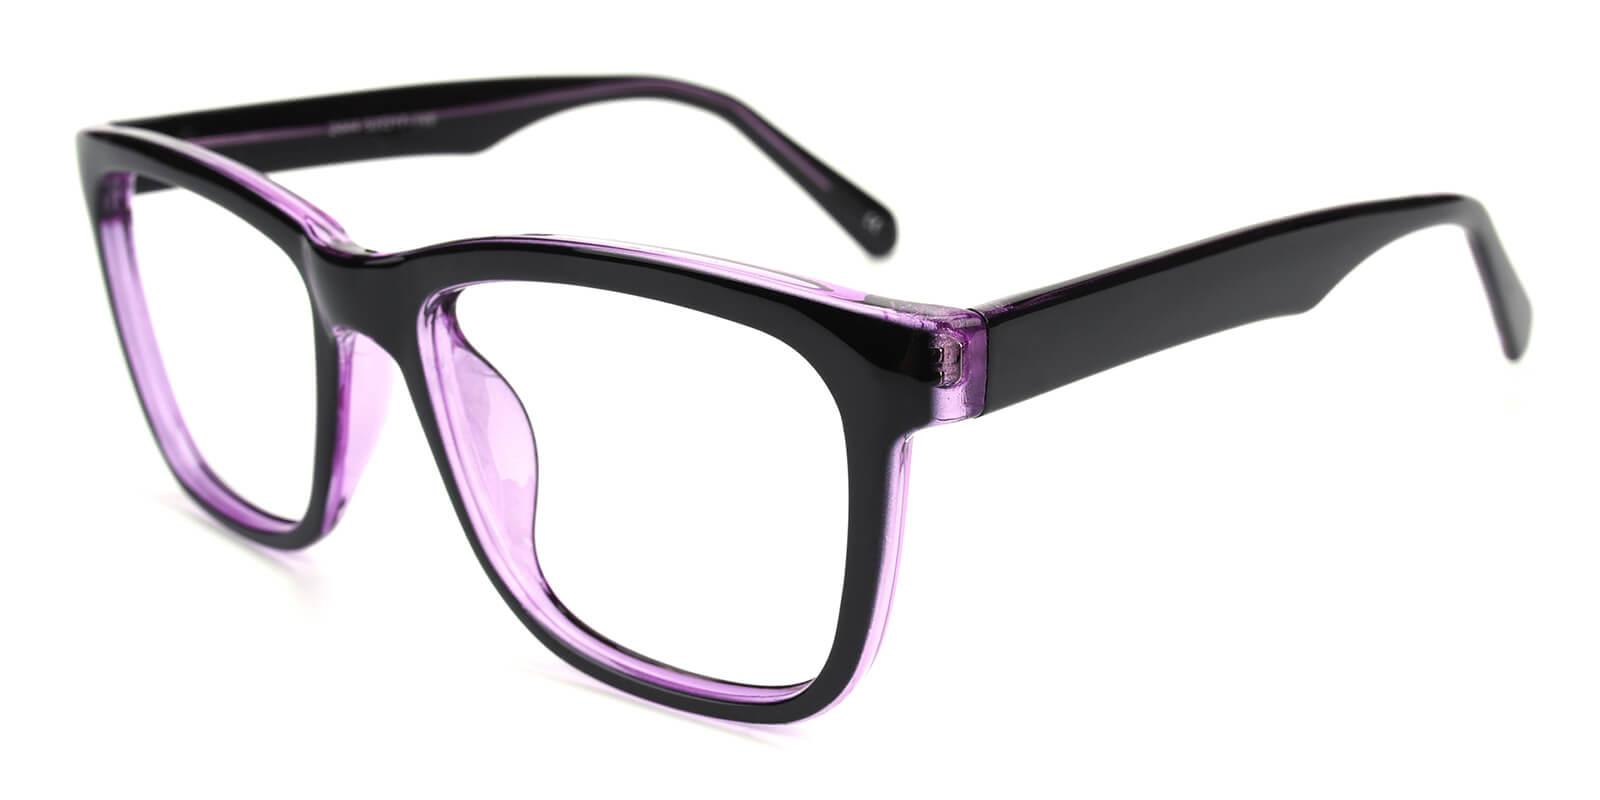 Colaan-Purple-Square-Plastic-Eyeglasses-additional1